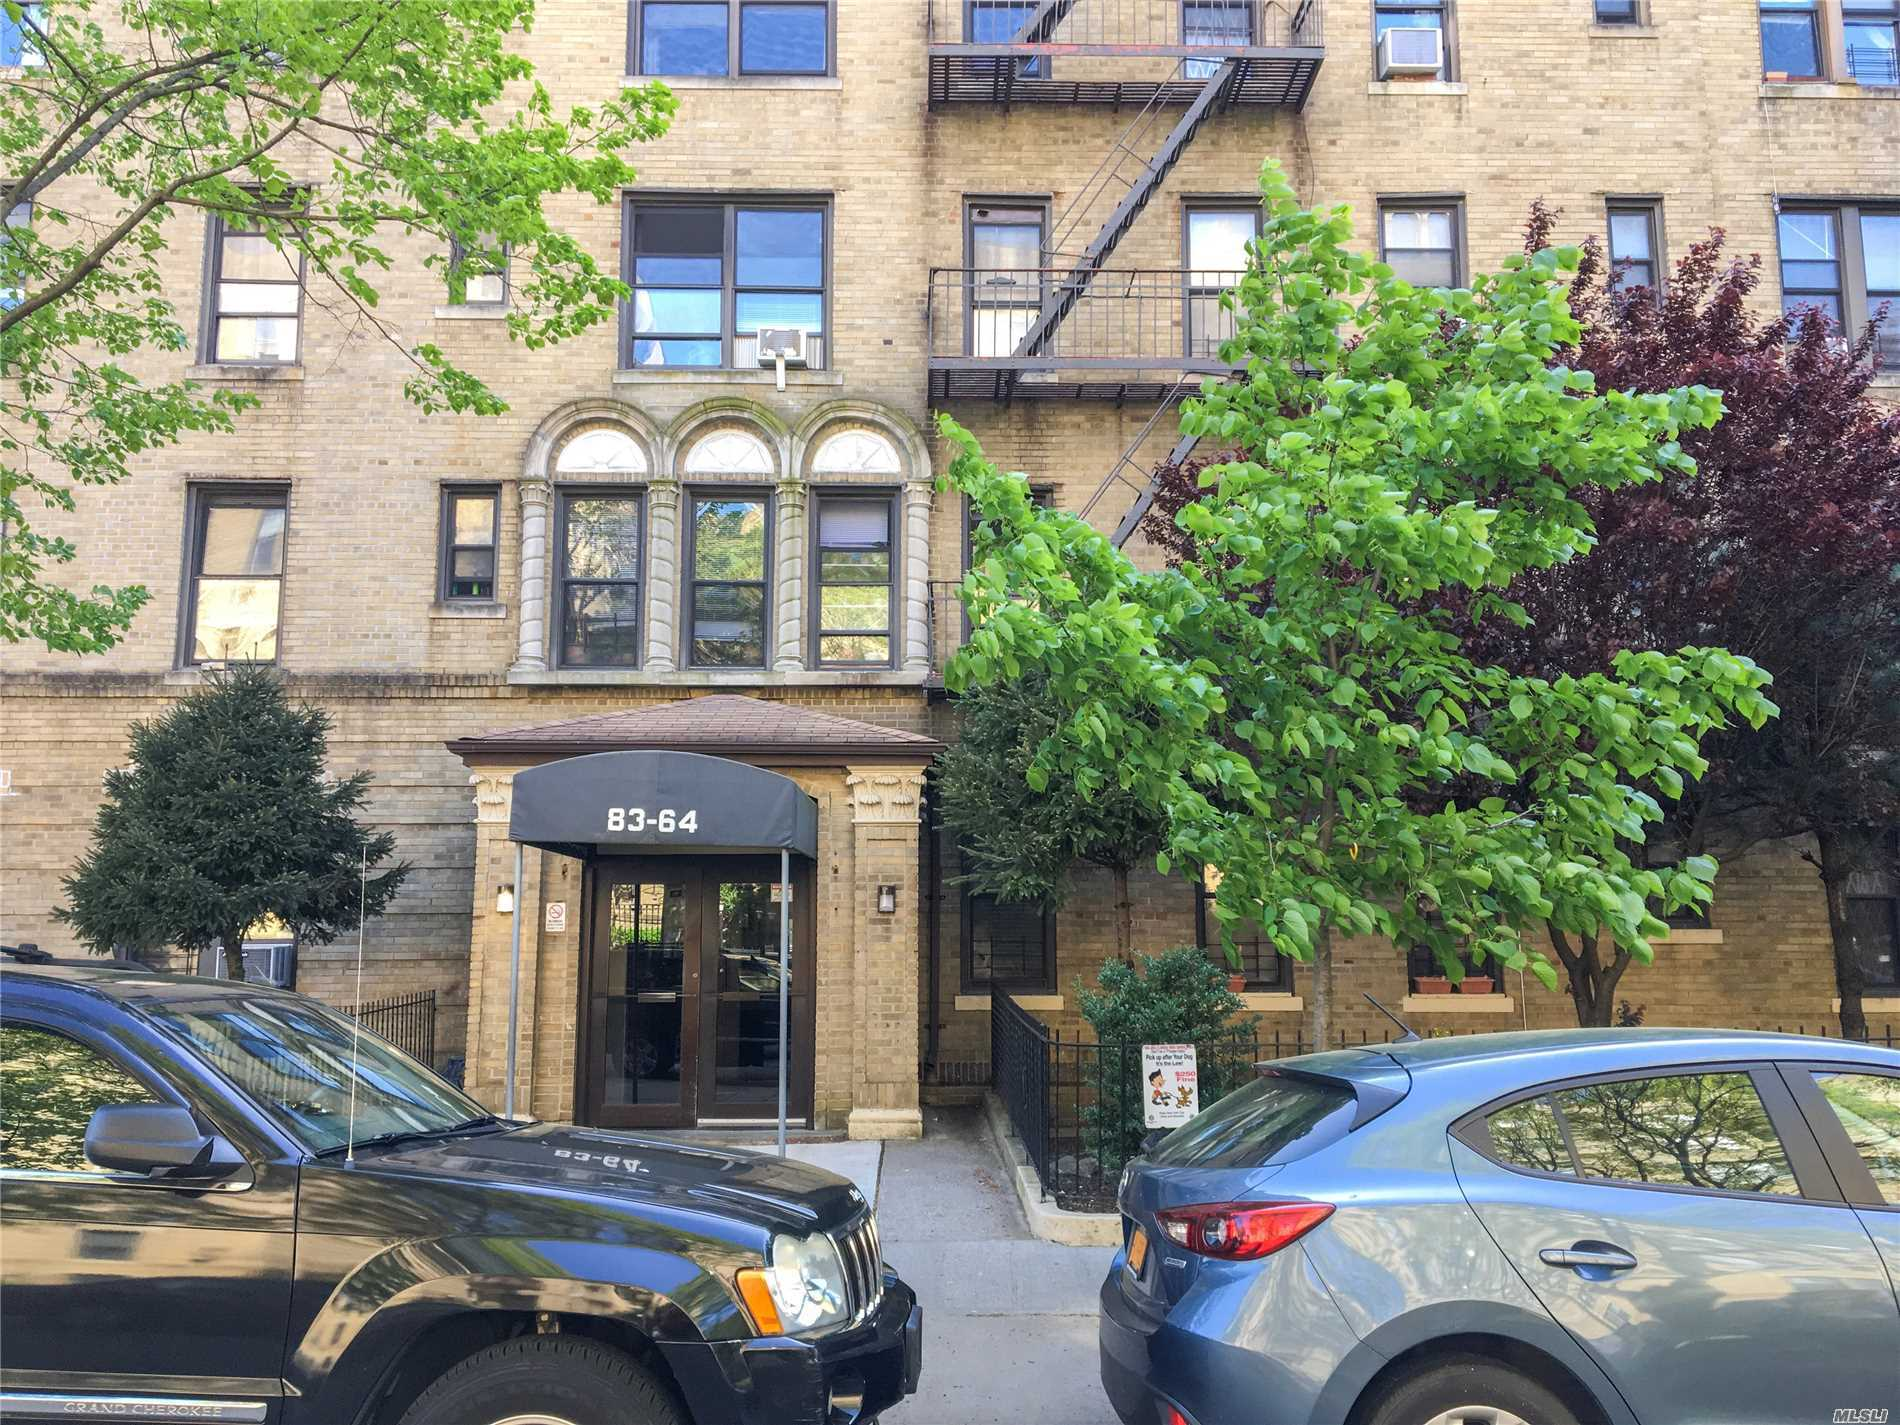 In the charming area of Kew Gardens, This cozy apartment is a junior 1 with southern exposure, offering hard wood floors through out the apartment. Roughly about a 5 minute walk to the Kew Gardens LIRR train station. About a 10 minute walk to the Union Turnpike train station where you can take the E or F train.